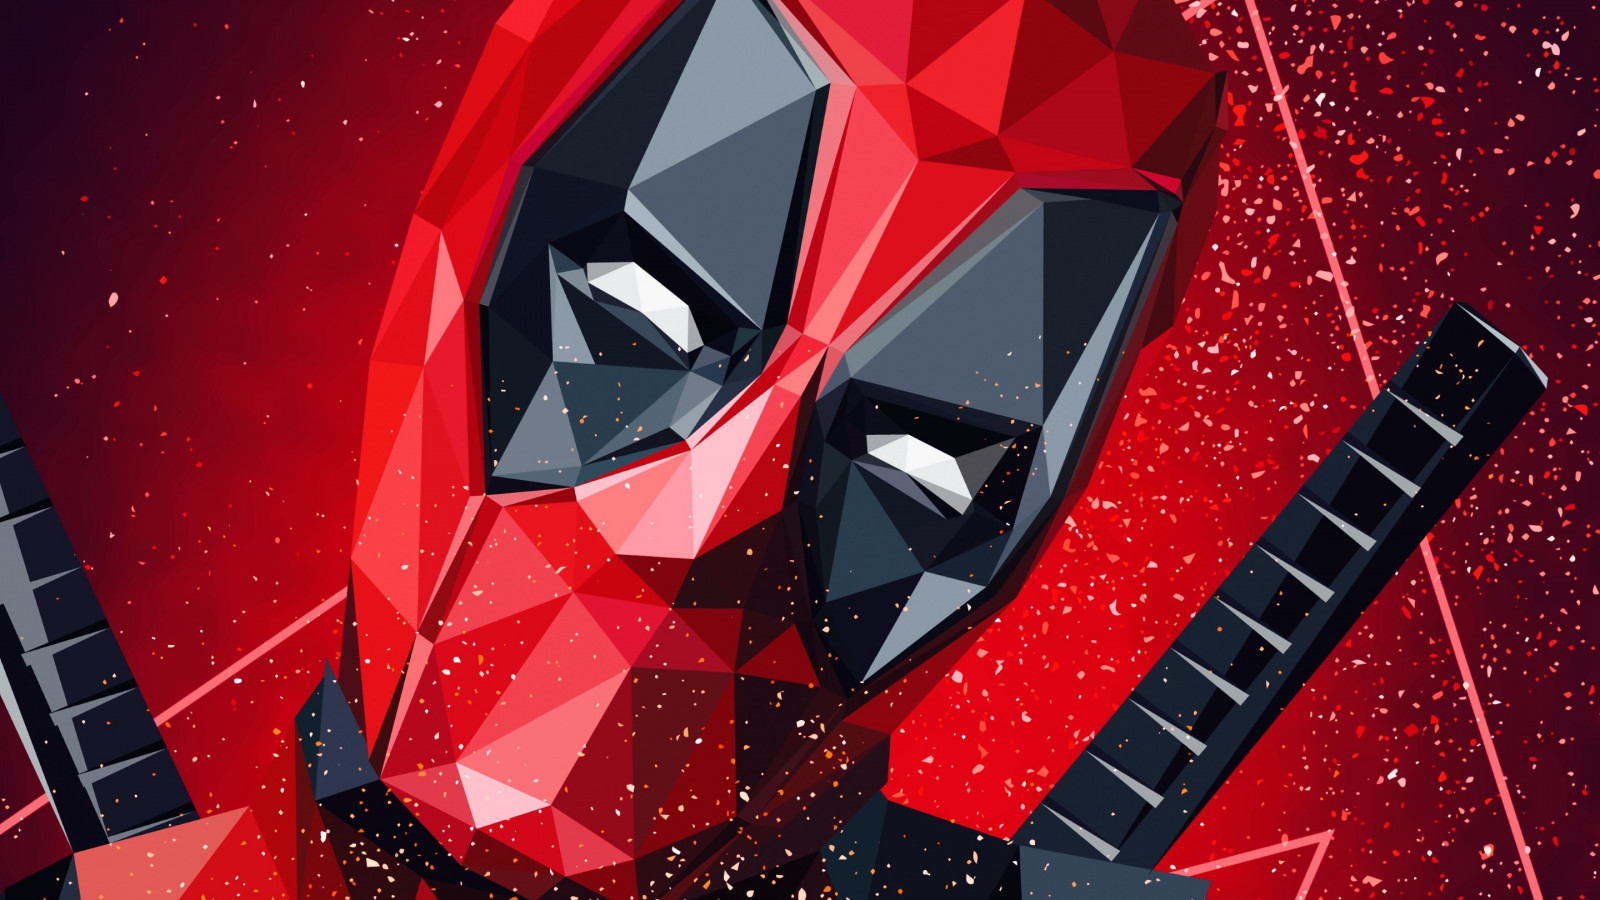 Deadpool digital art wallpaper 1600x900